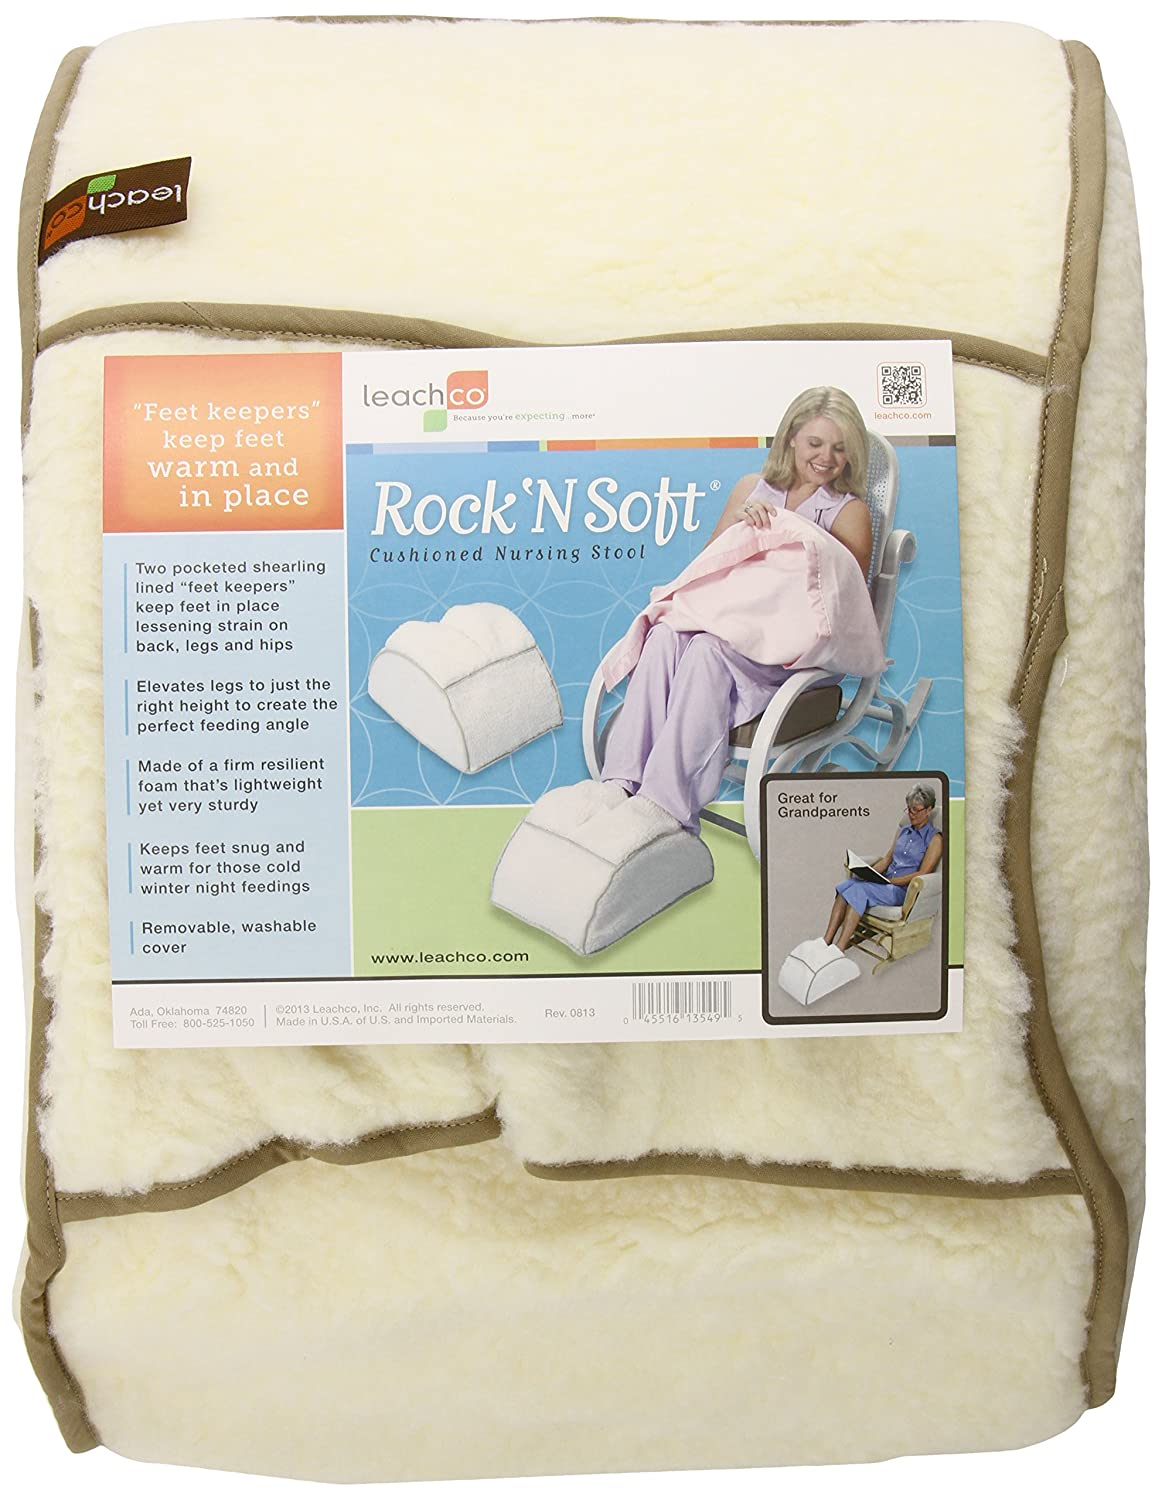 Leachco Rock N Soft Cushioned Nursing Stool, Ivory 13549